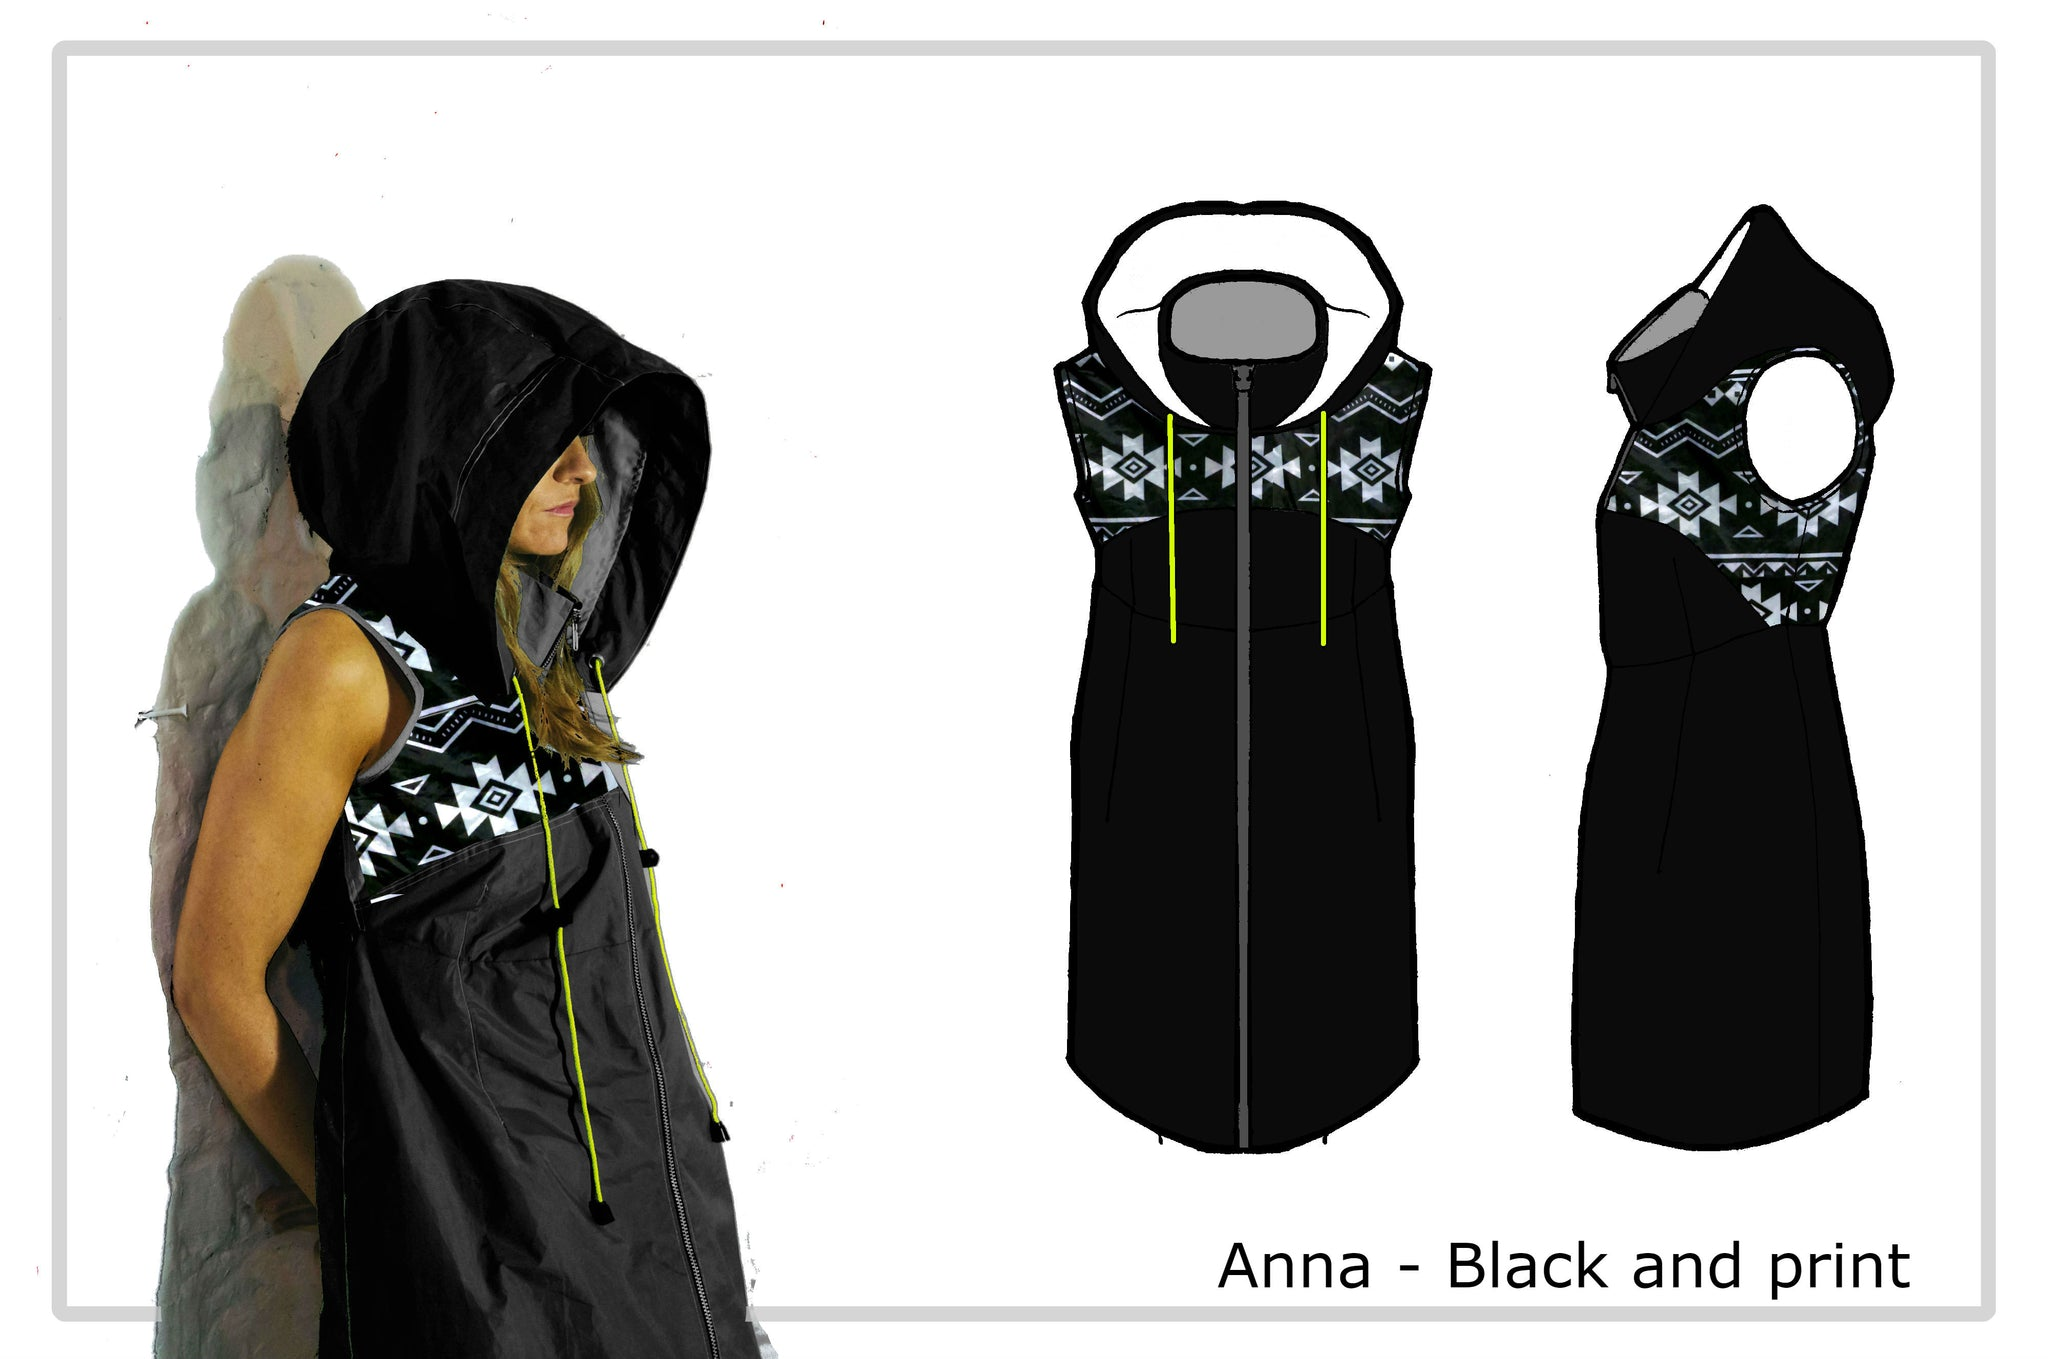 The Anna - Showerproof Zip-thru Dress